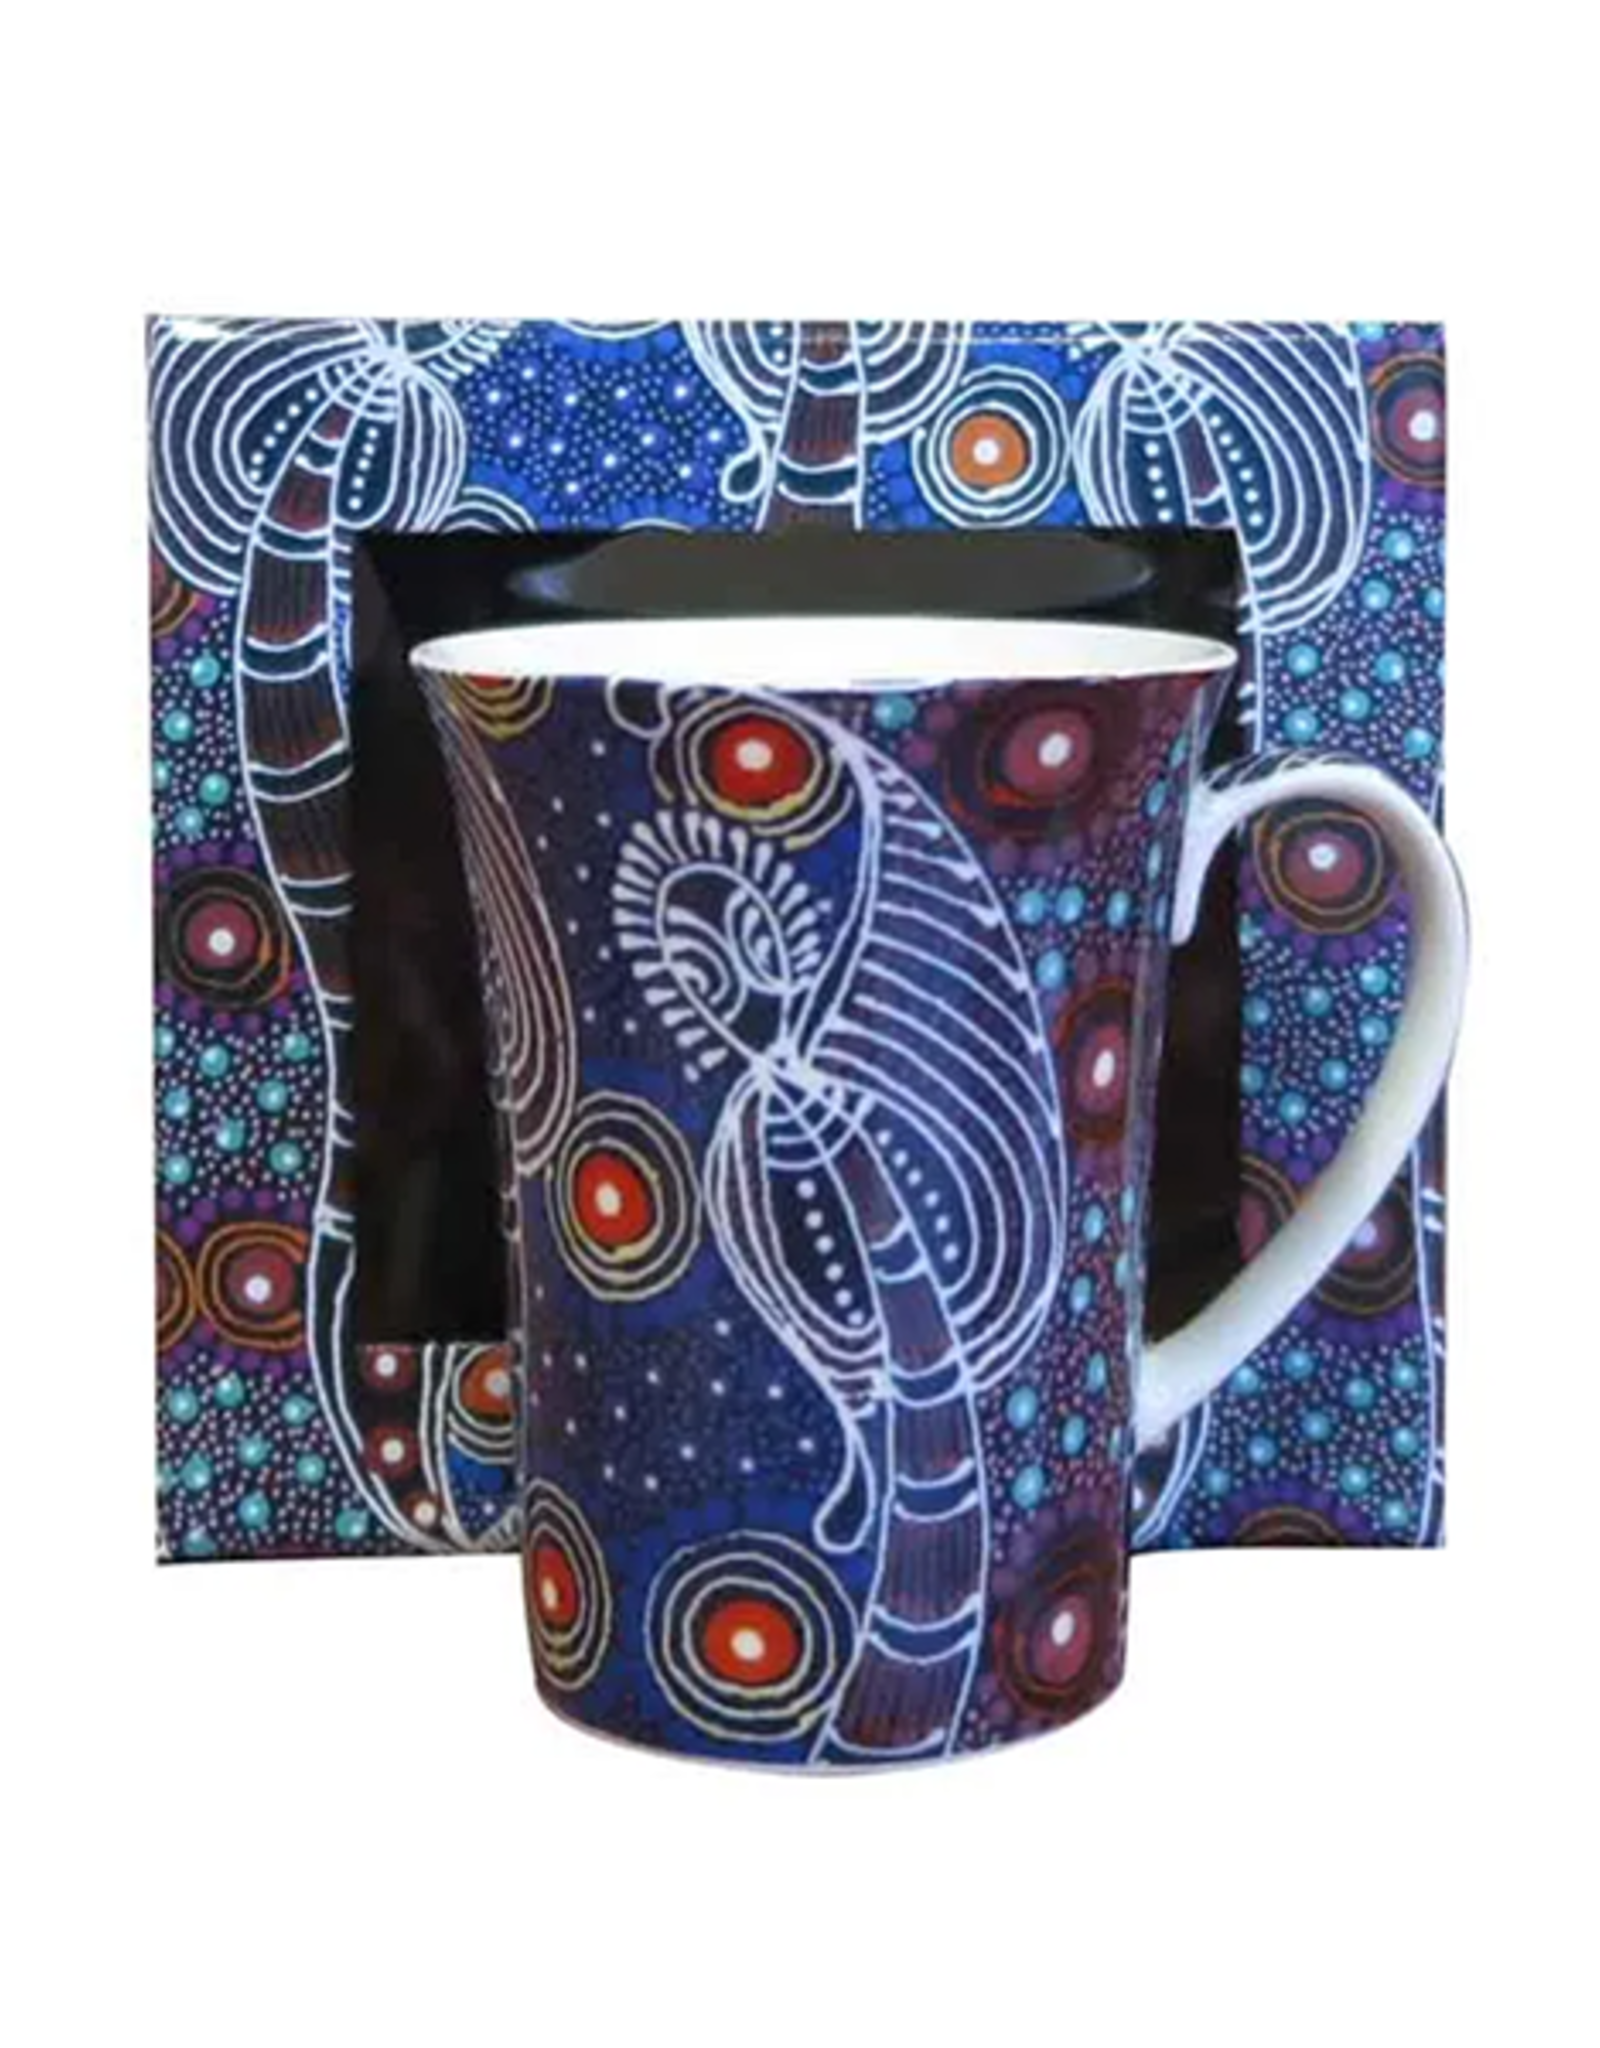 Utopia Mug - Colleen Wallace 147